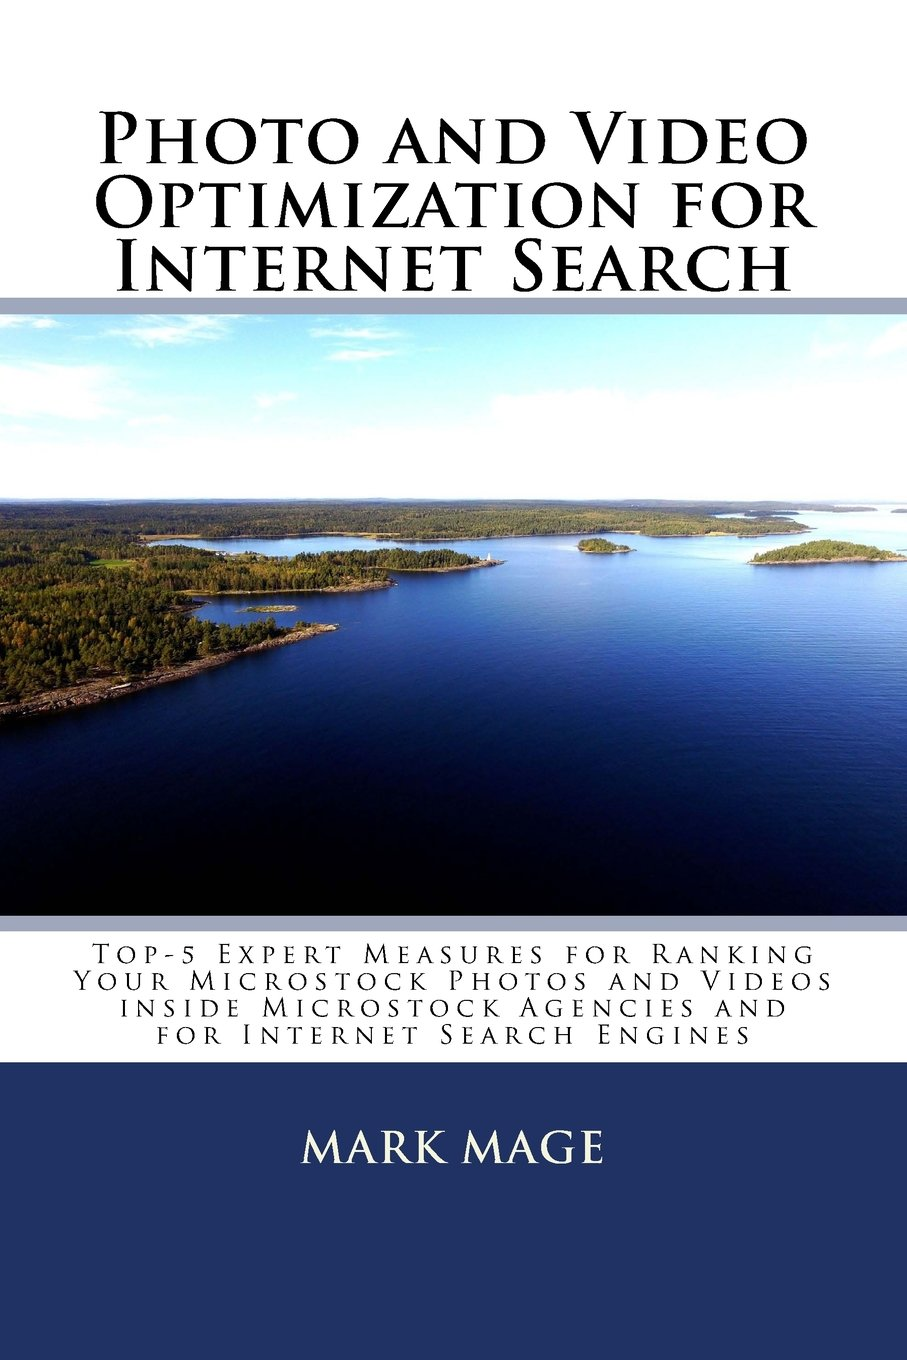 Photo and Video Optimization for Internet Search: Top-5 Expert Measures for Ranking Your Microstock Photos and Videos inside Microstock Agencies and for Internet Search Engines por Mark Mage